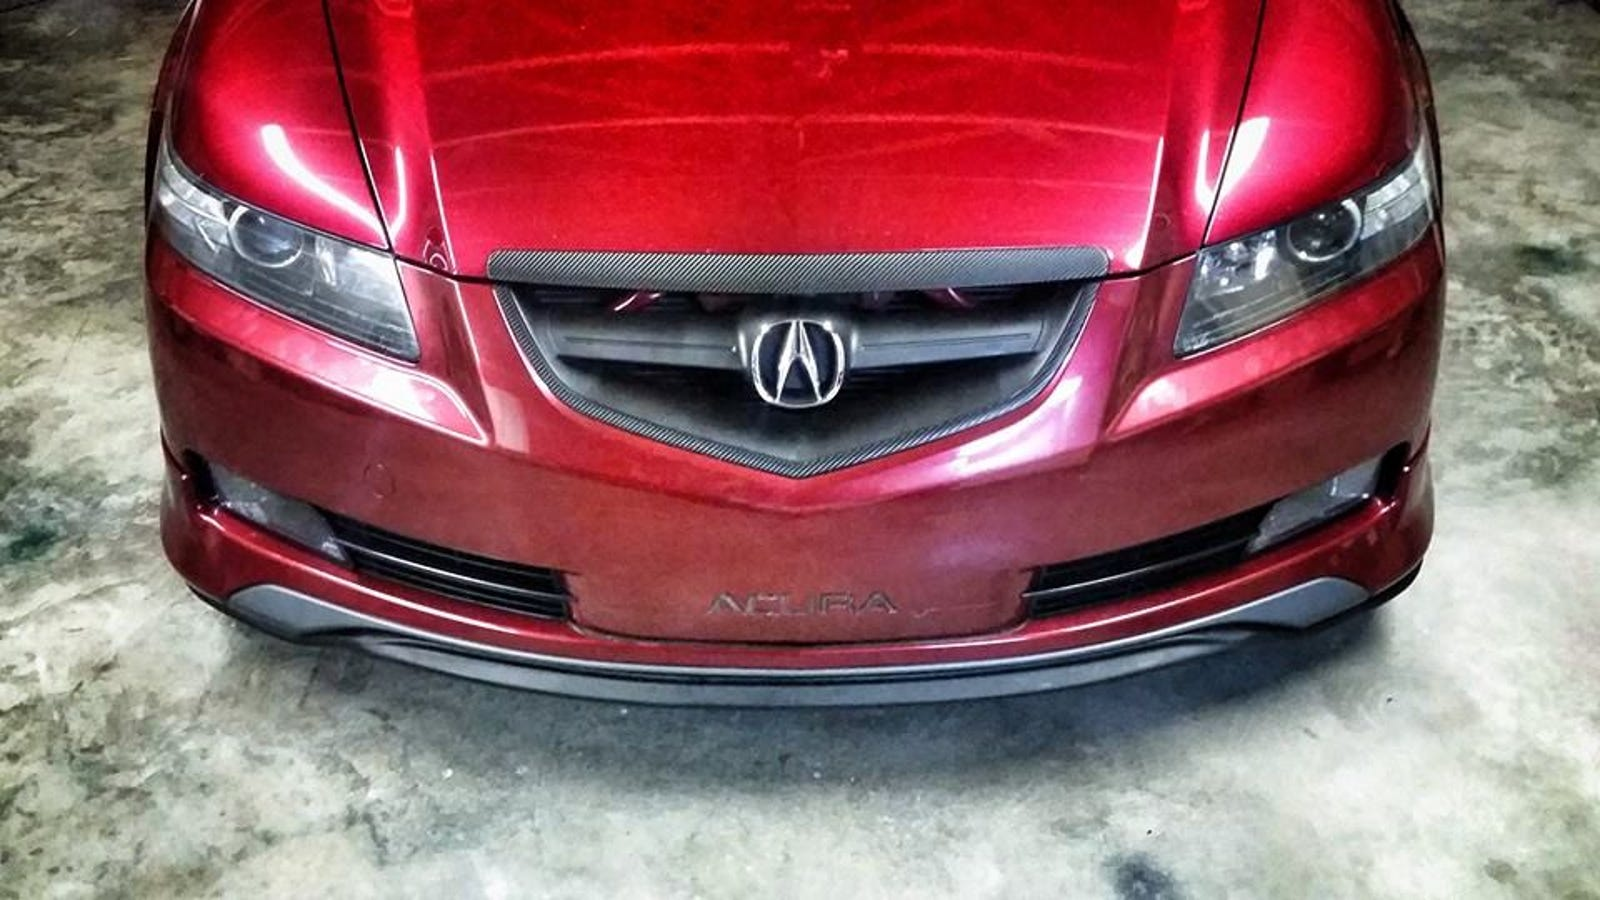 Why Do STI Front Lips Fit So Well On HondasAcuras - 2005 acura tl front lip